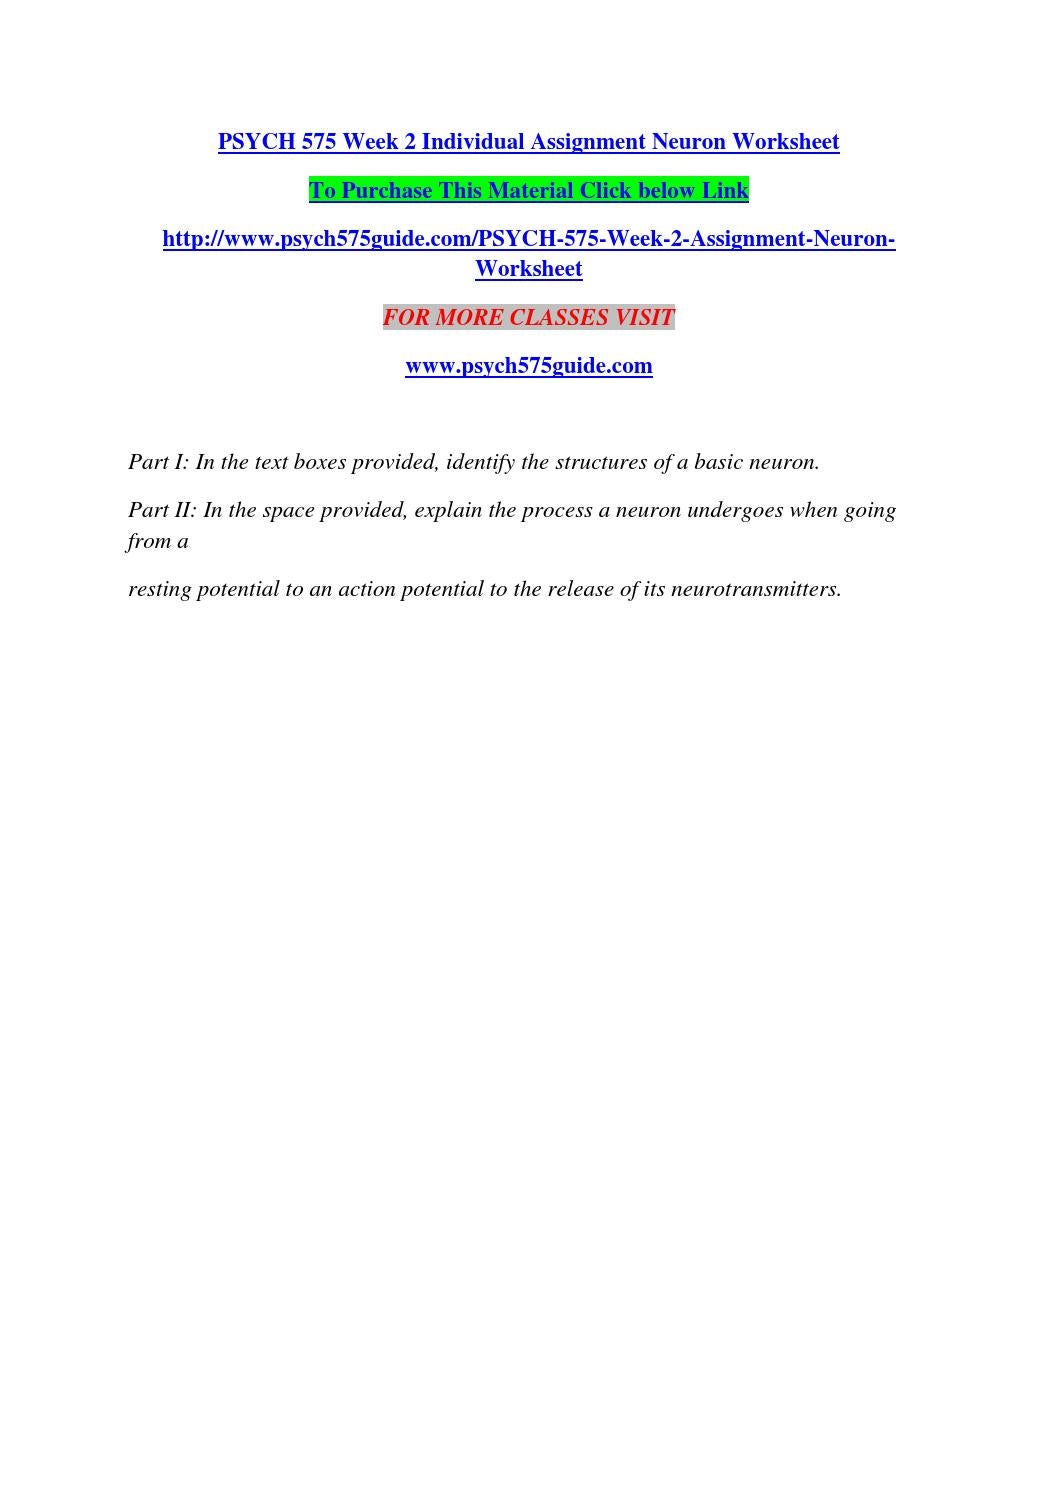 worksheet Action Potential Worksheet psych 575 week 2 individual assignment neuron worksheet by naveencrzn15 issuu